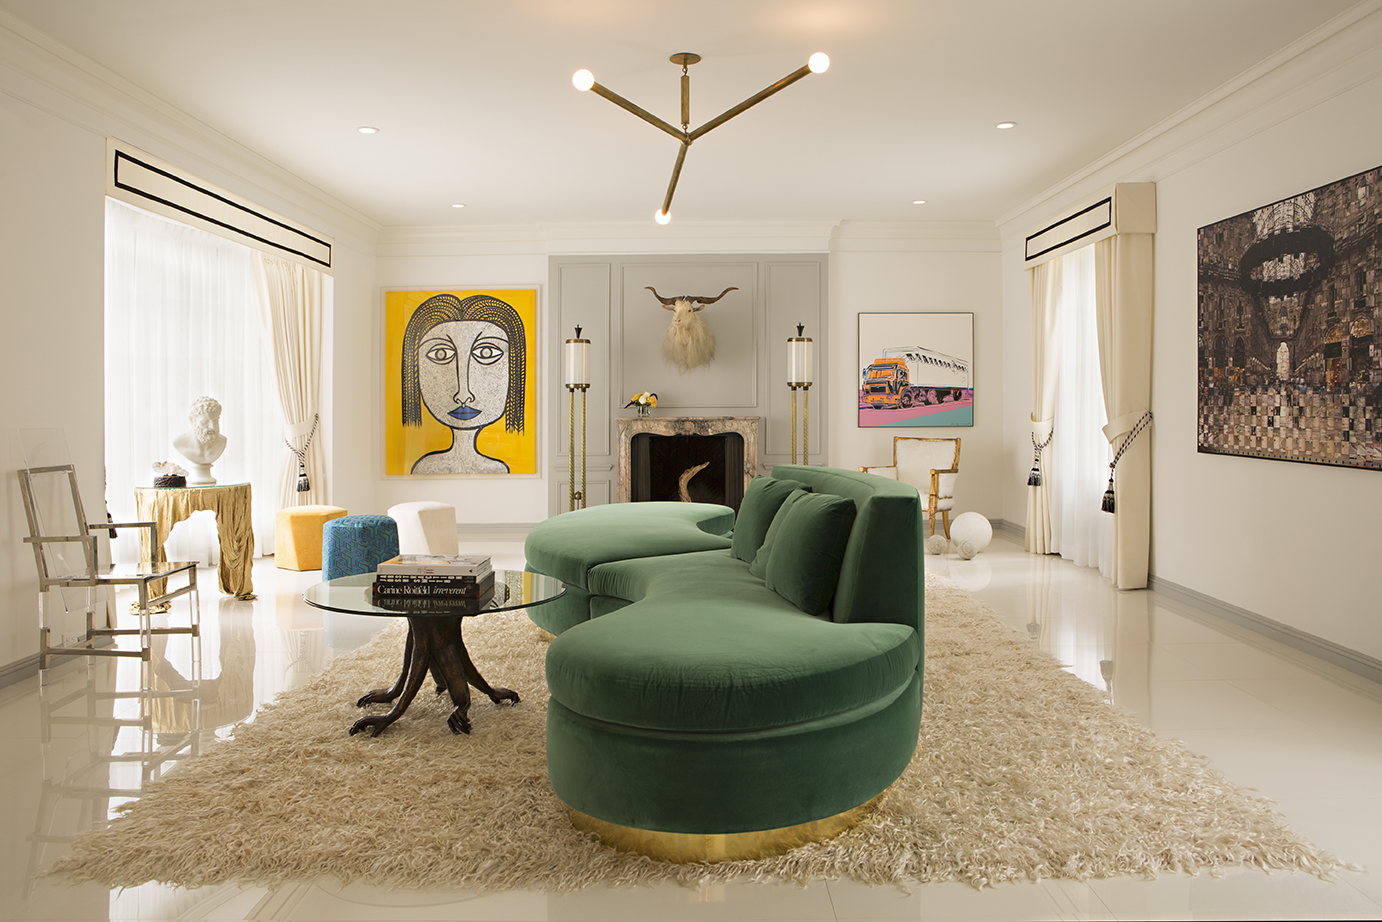 Modern Interior Modern Interiors: The Best From Woodson & Rummerfield's contemporary interior by woodson rummerfields modern interior design ideas